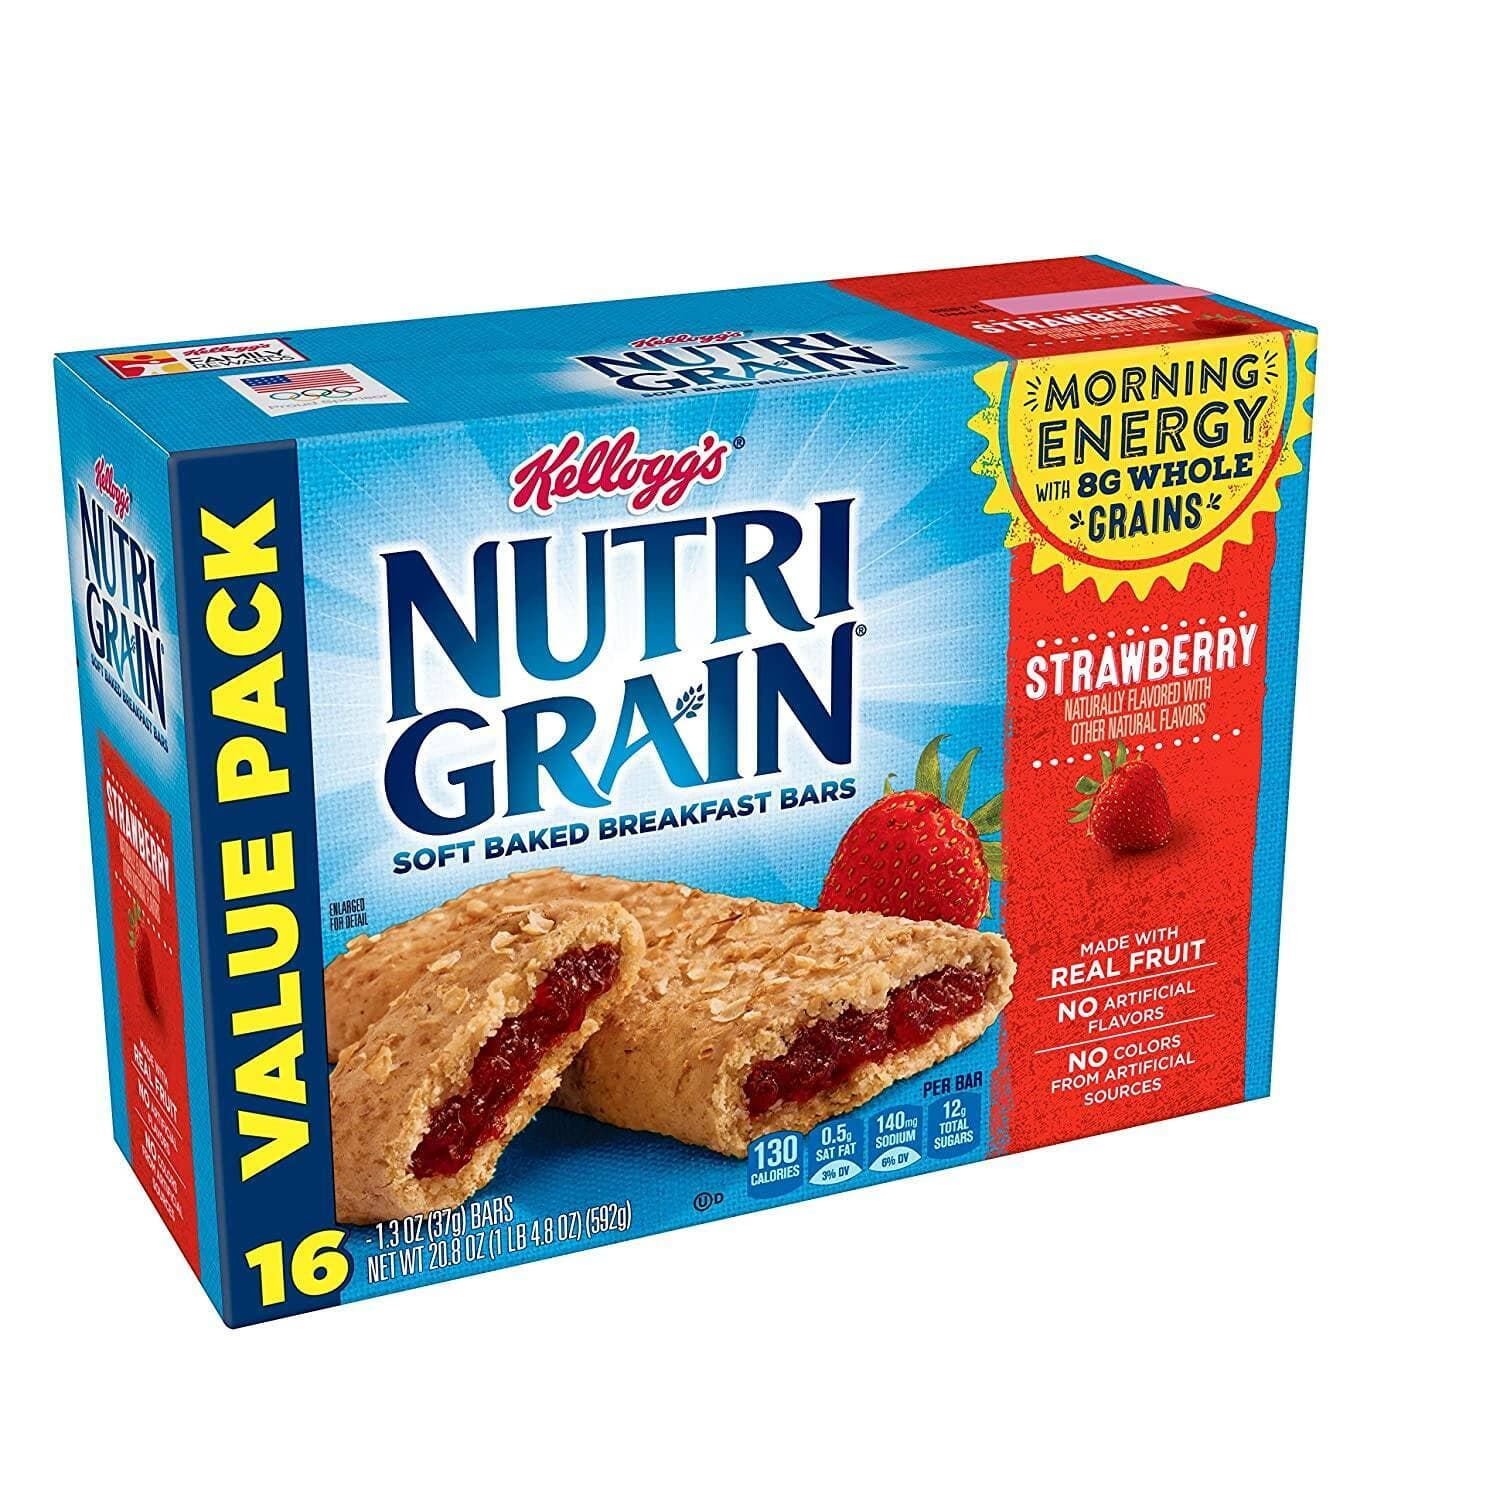 3-Pack of 16-Count Kellogg's Nutri-Grain Breakfast Bars (Strawberry) $8.89 w/ S&S + Free Shipping w/ Prime or $25+ ~ Amazon